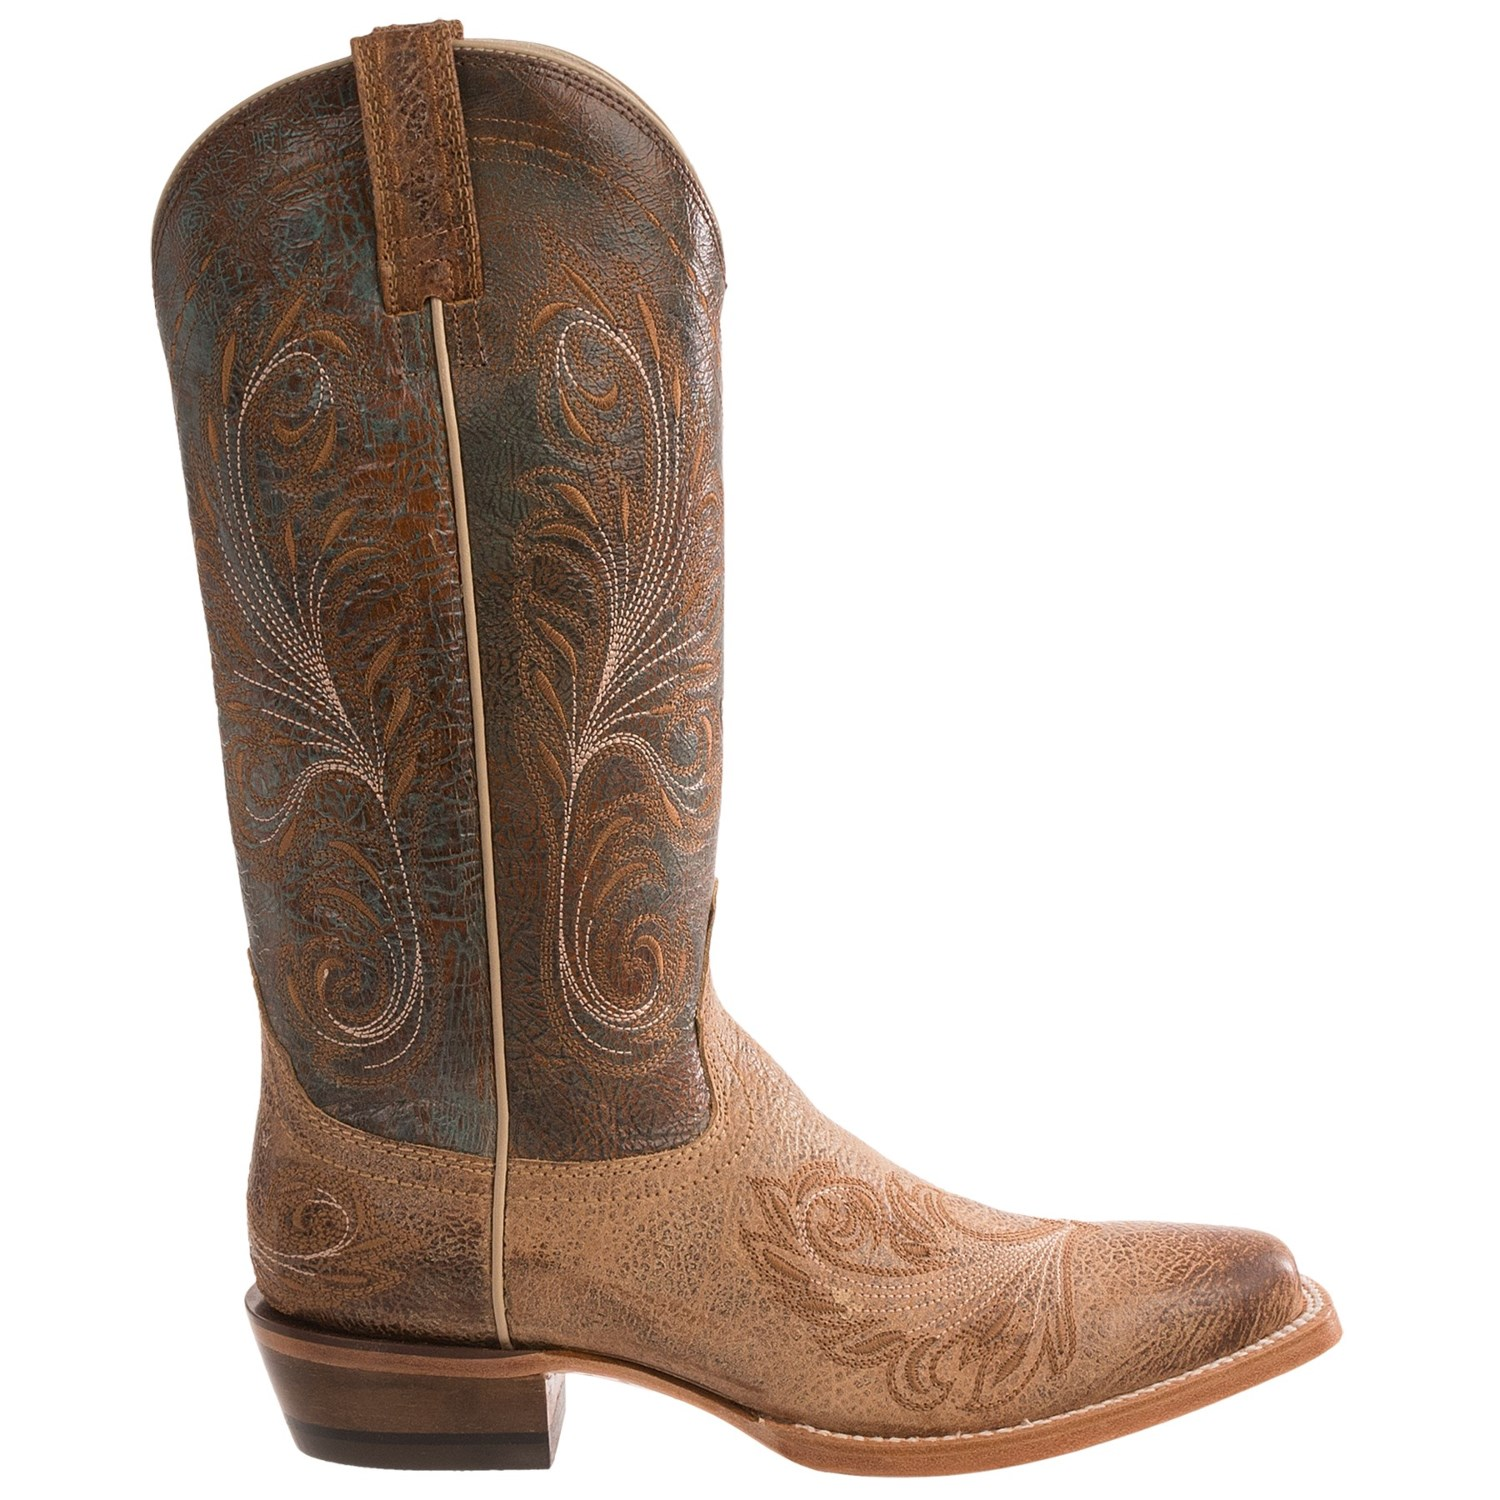 Ariat Womens Cowboy Boots - Cr Boot